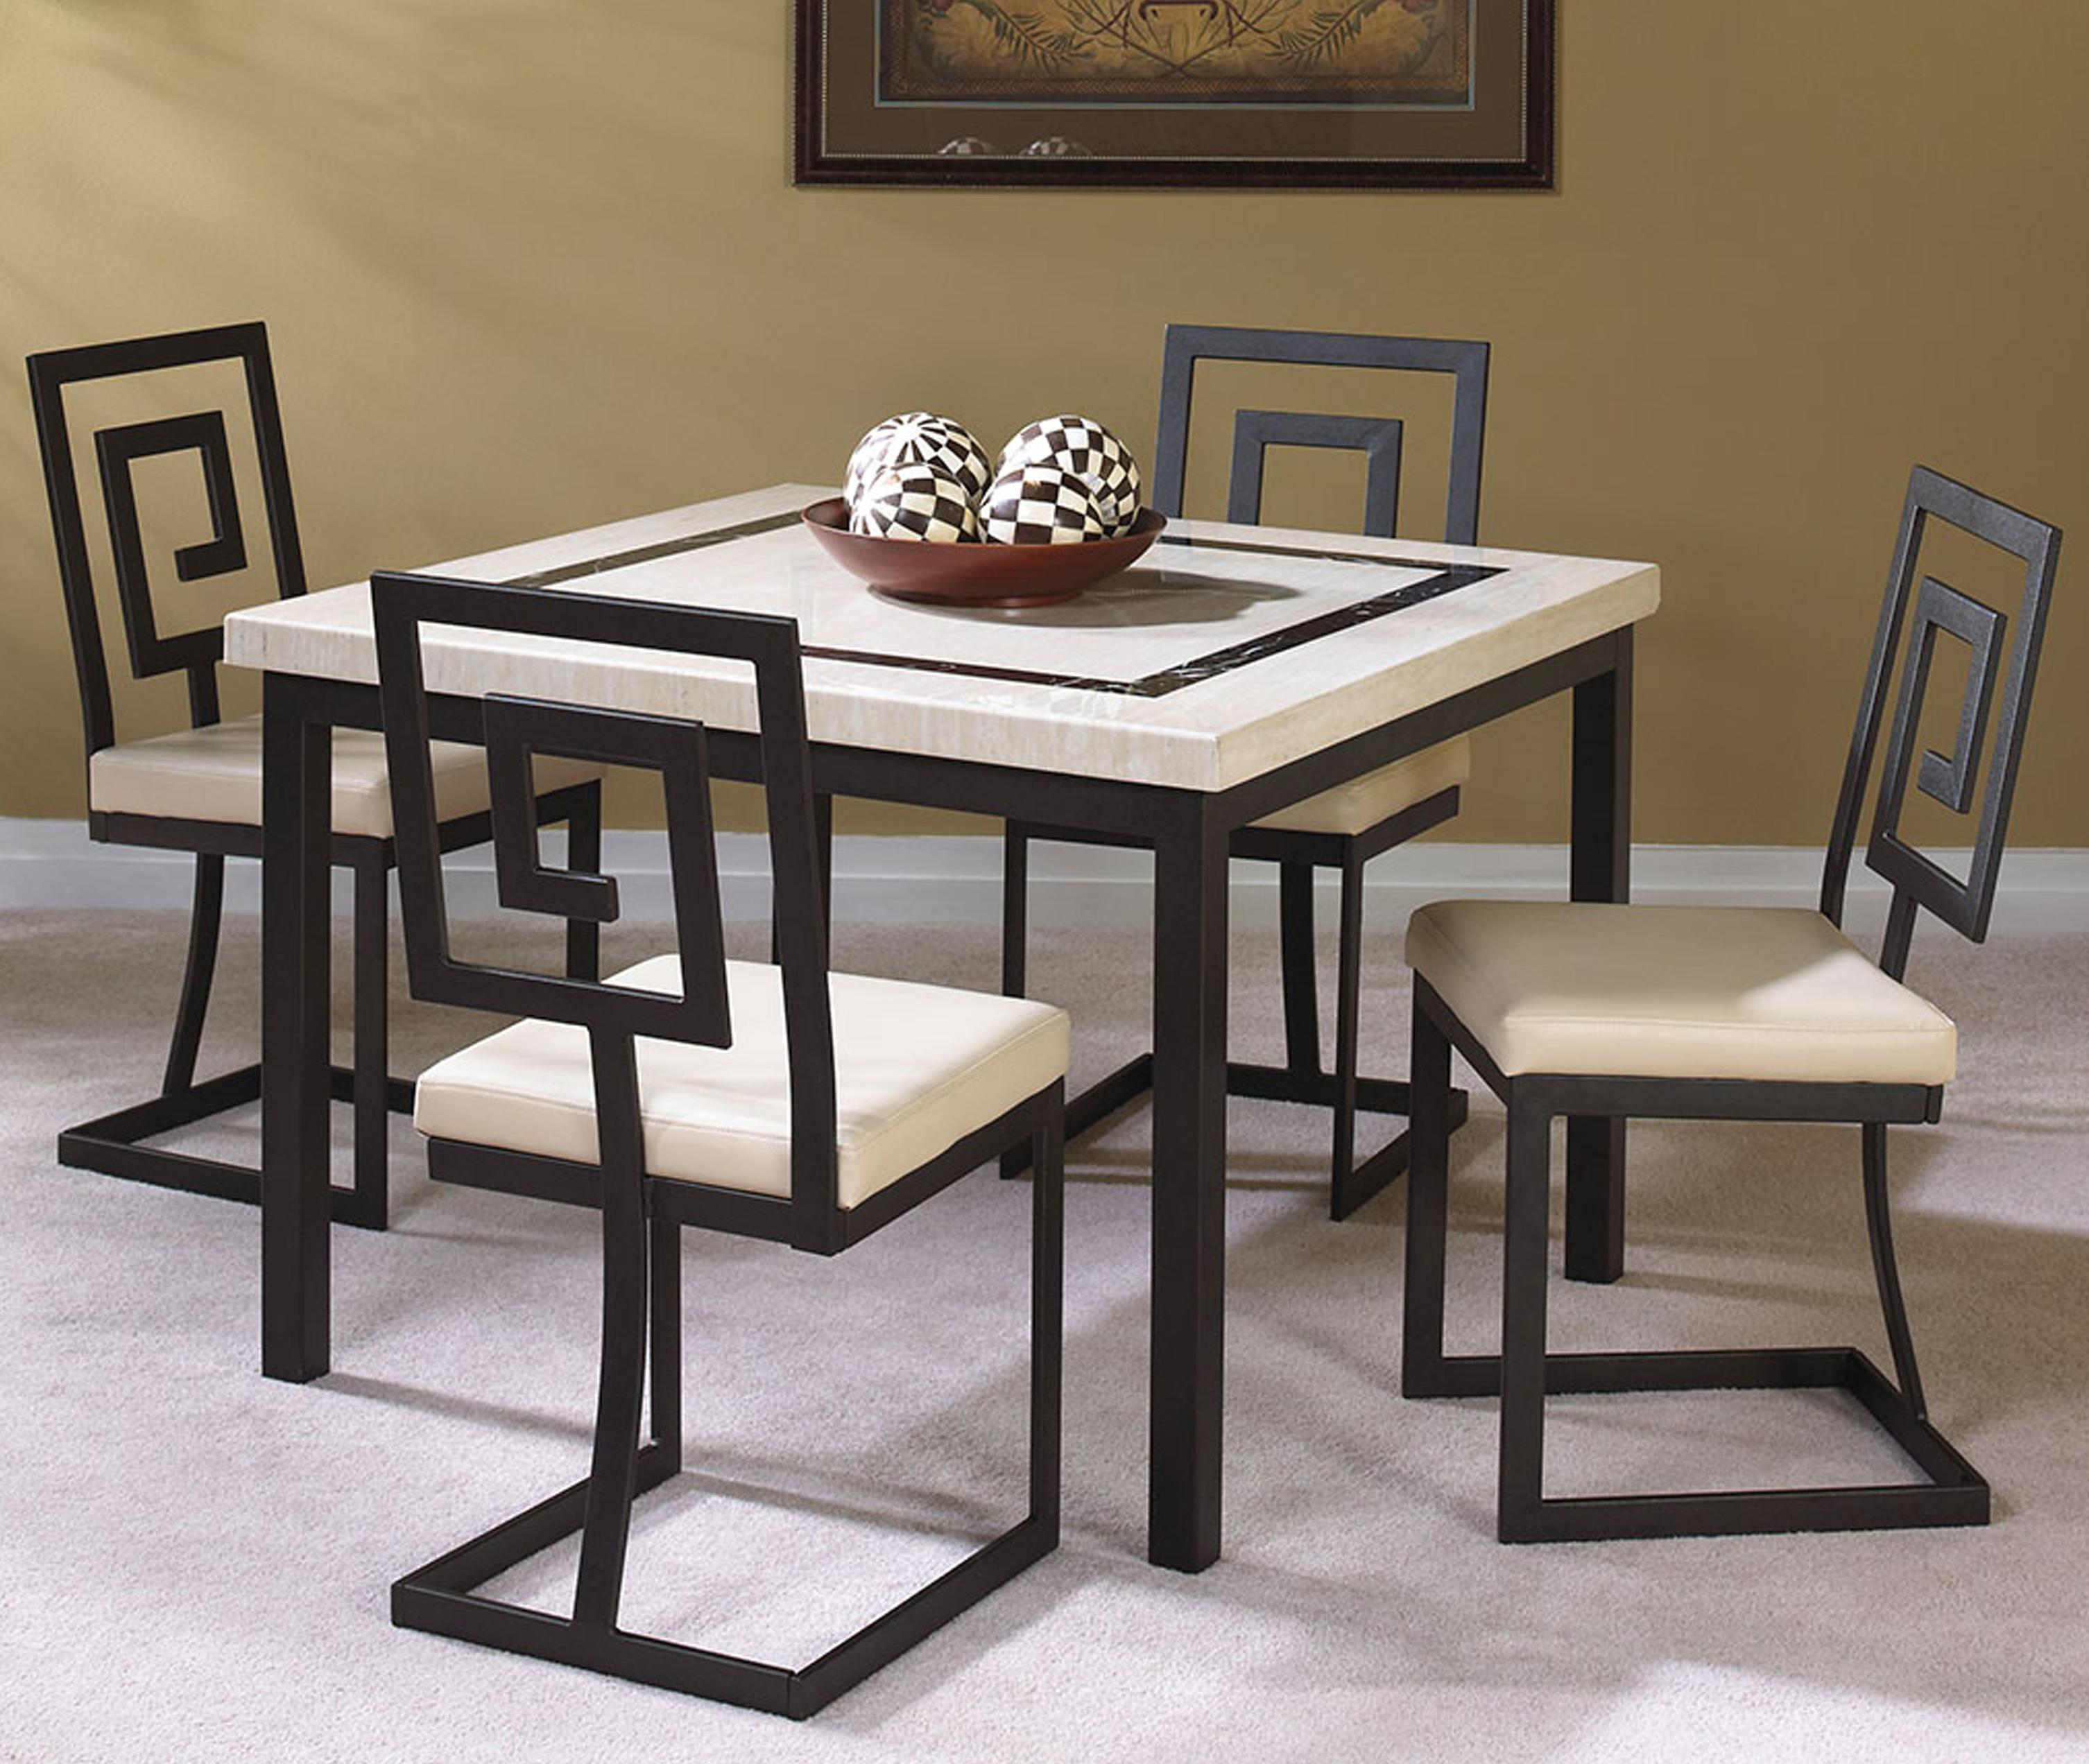 Cramco Inc Maze 5 Piece Square Table and Side Chair Set